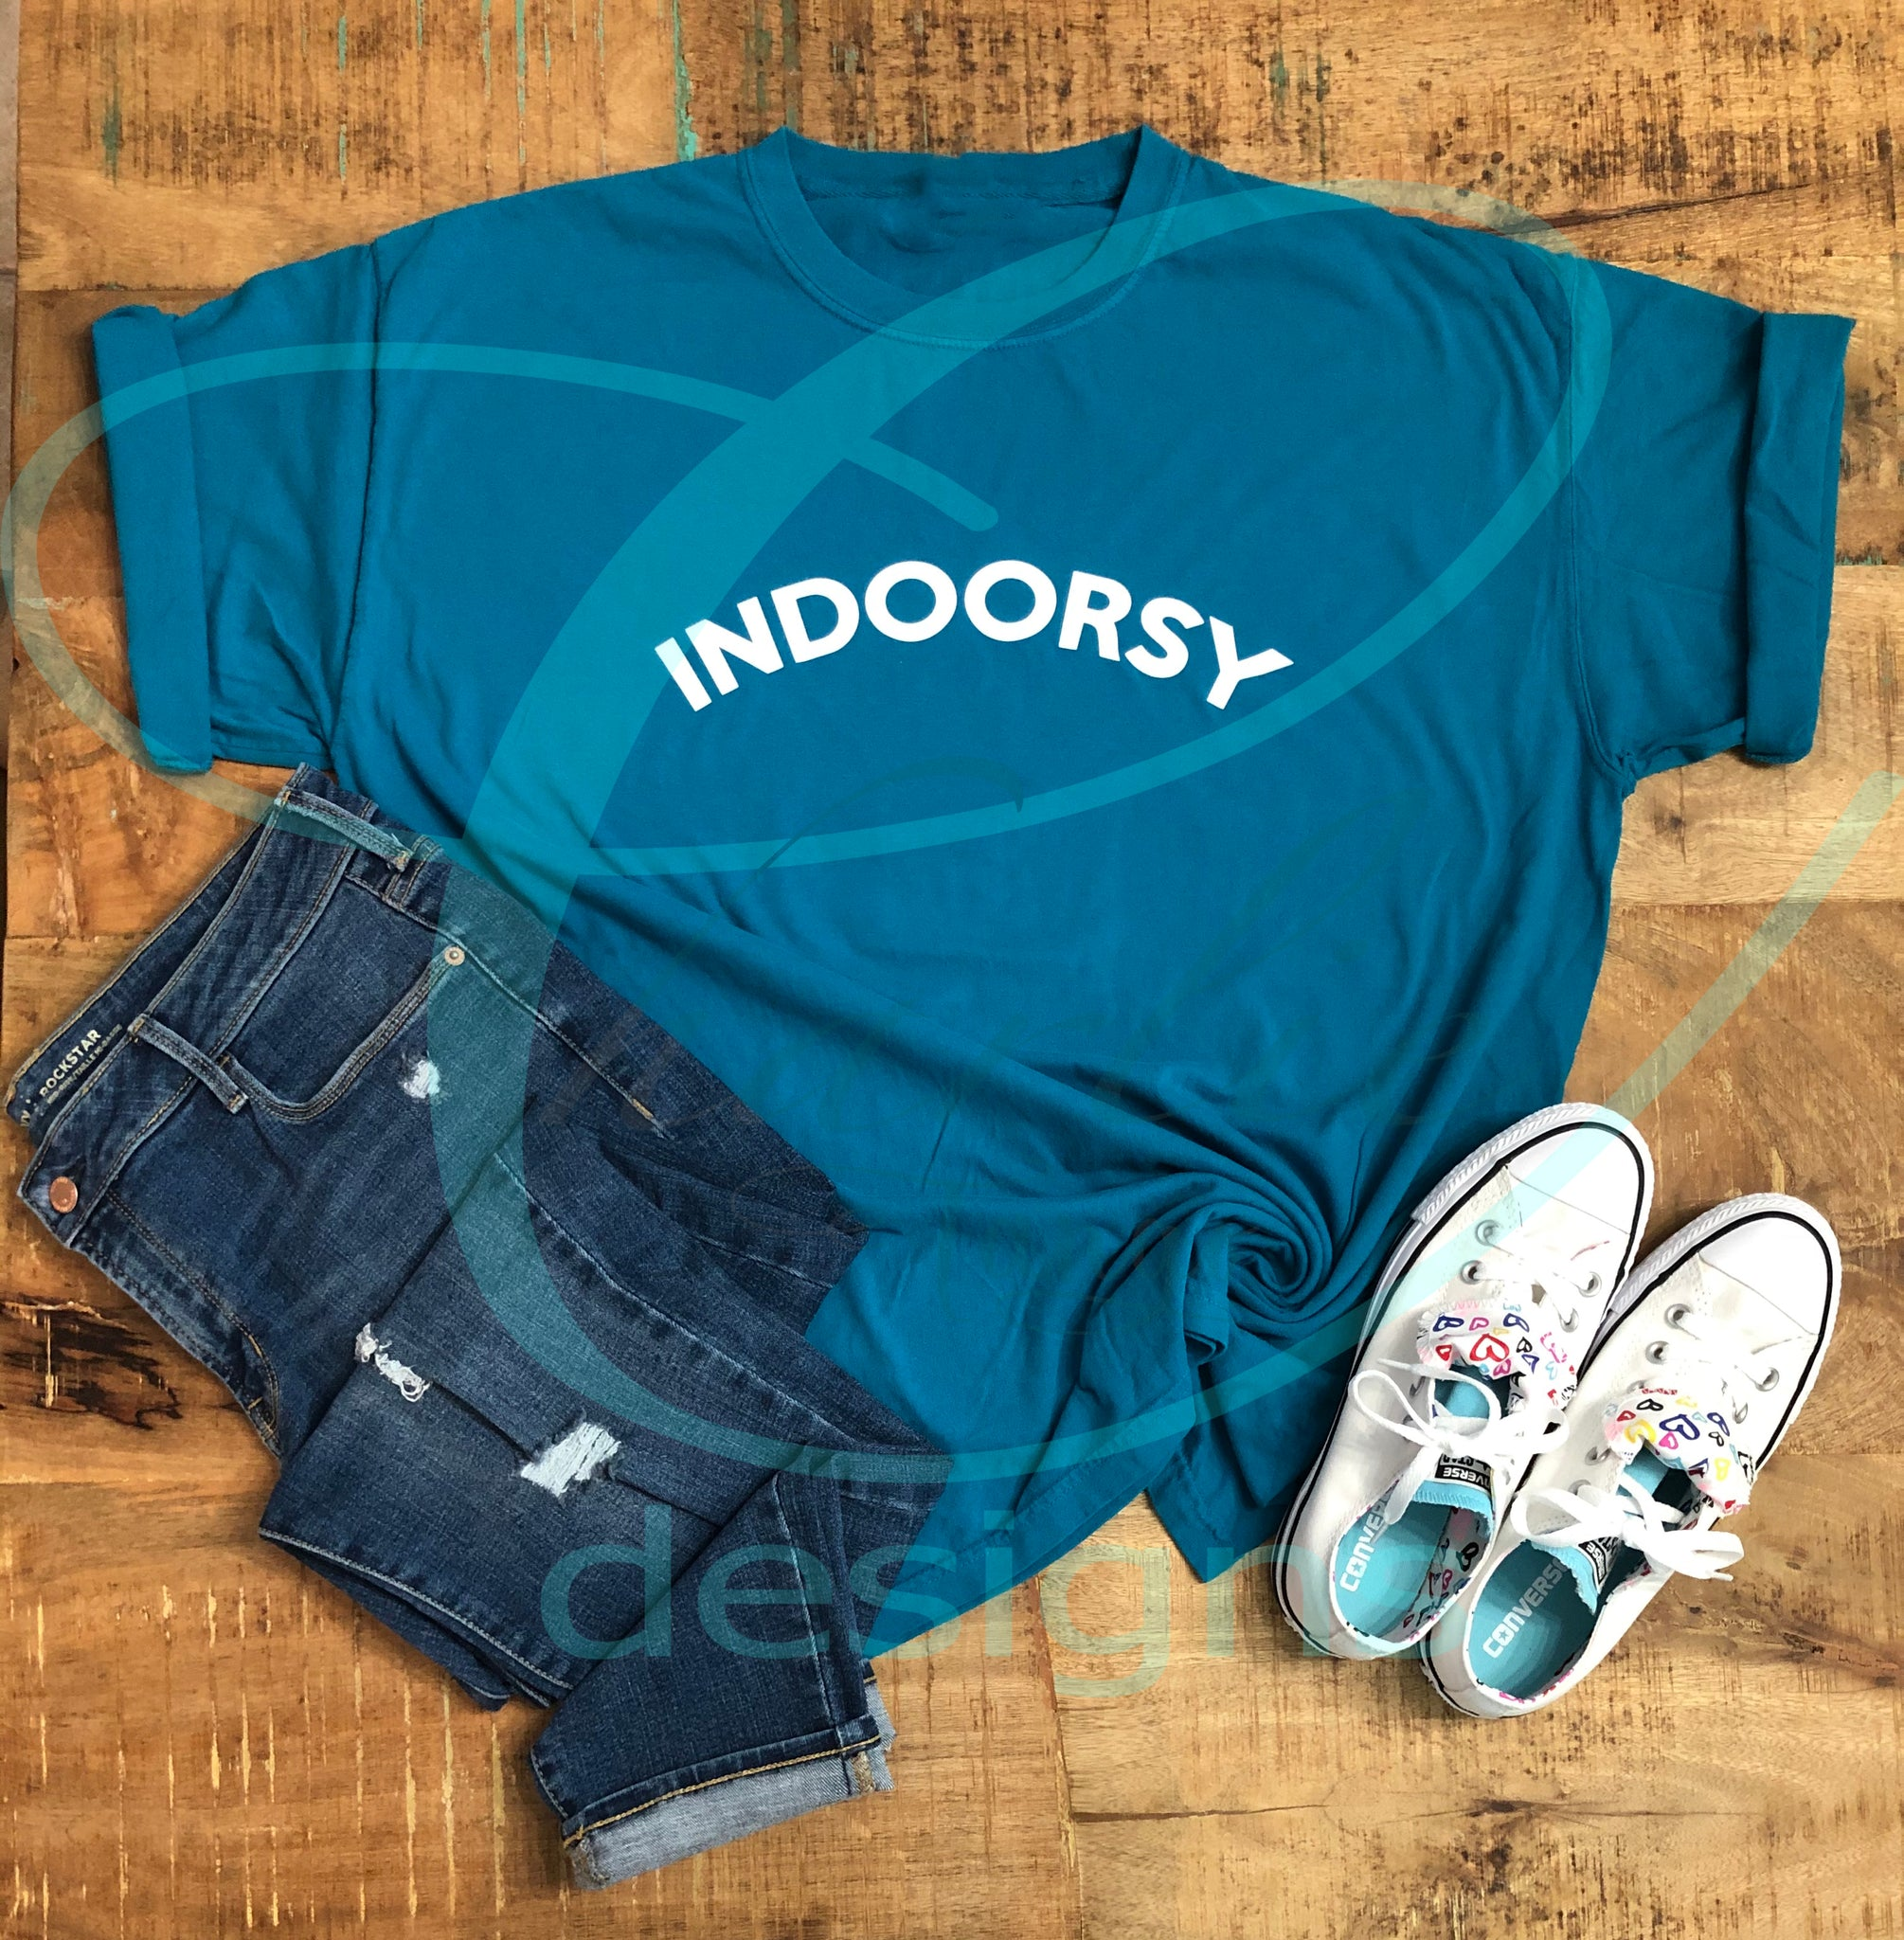 Indoorsy Tee Shirt